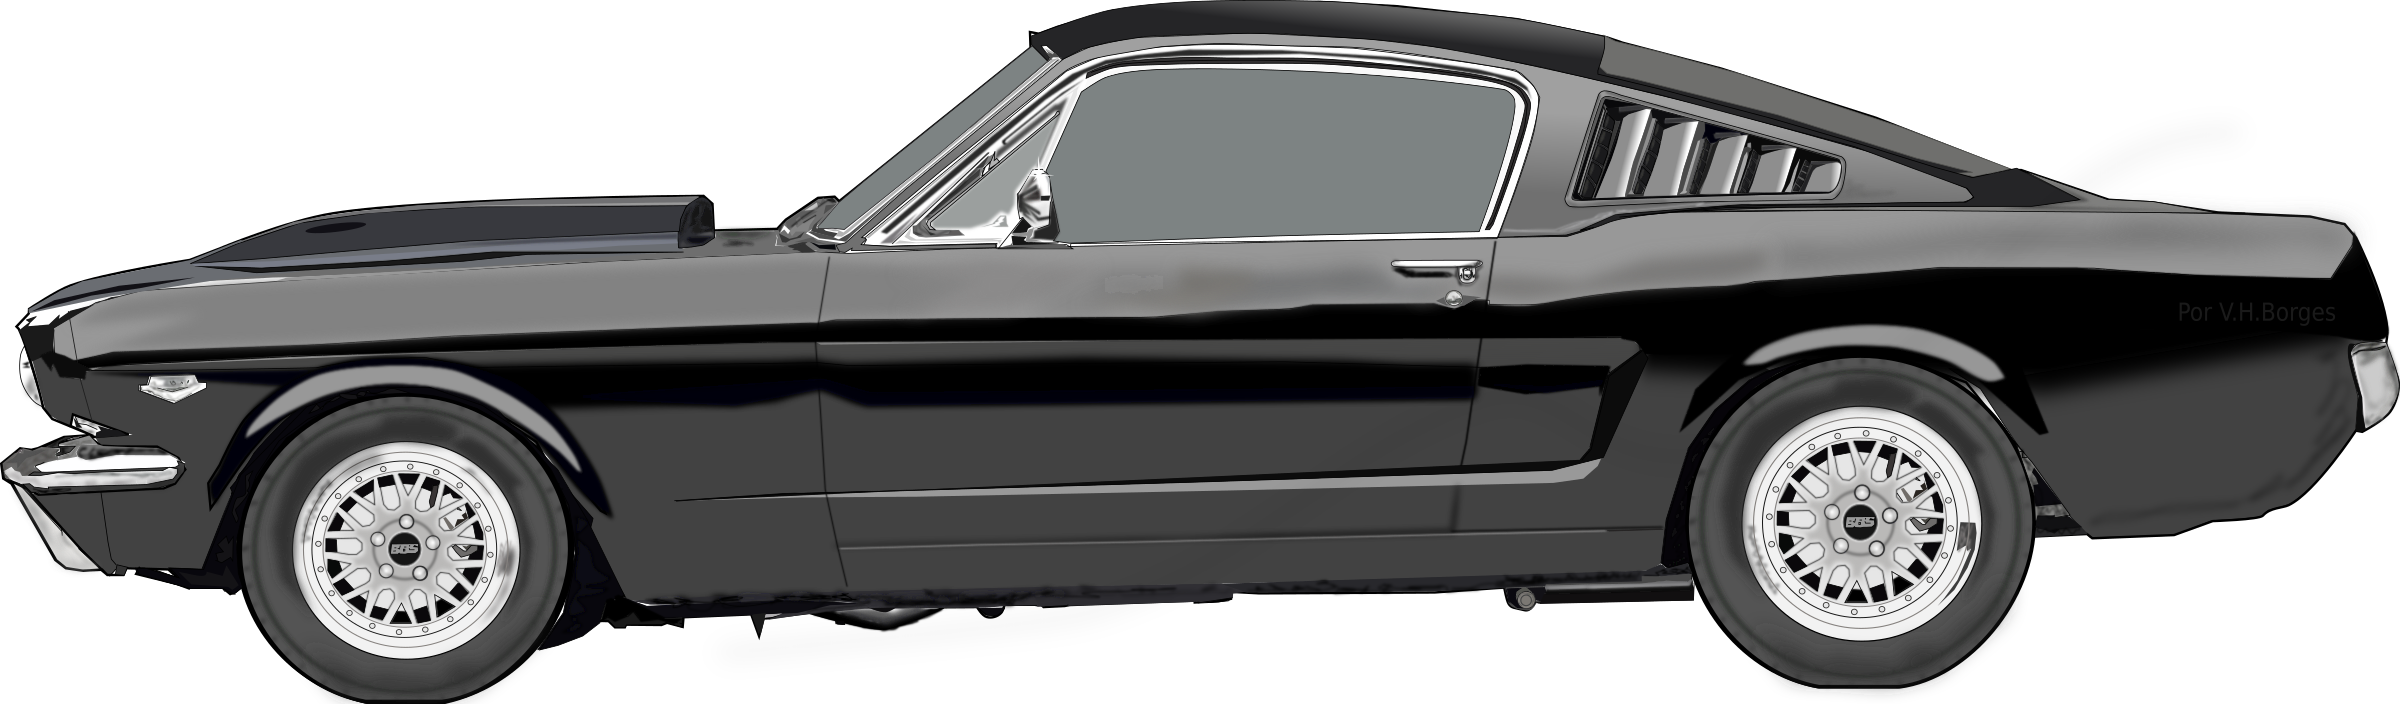 Free classic car clipart jpg black and white Shelby Mustang Clipart | jokingart.com jpg black and white